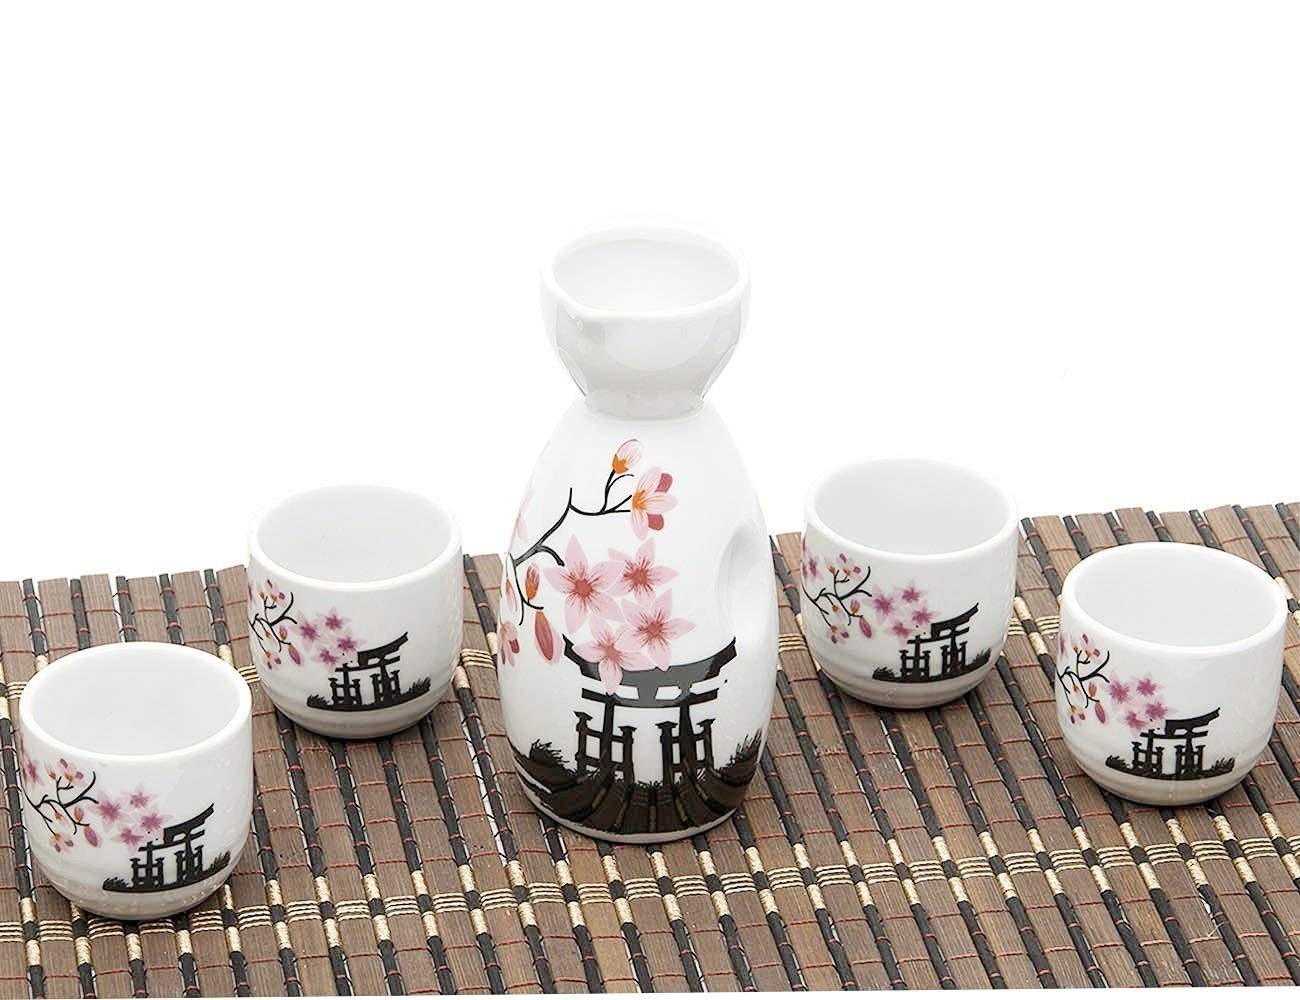 5 Piece Japanese Sake Cup Set Hand Painted Cherry Blossoms Flower Design Porcelain Pottery Traditional Ceramic Cups Crafts Wine Glasses